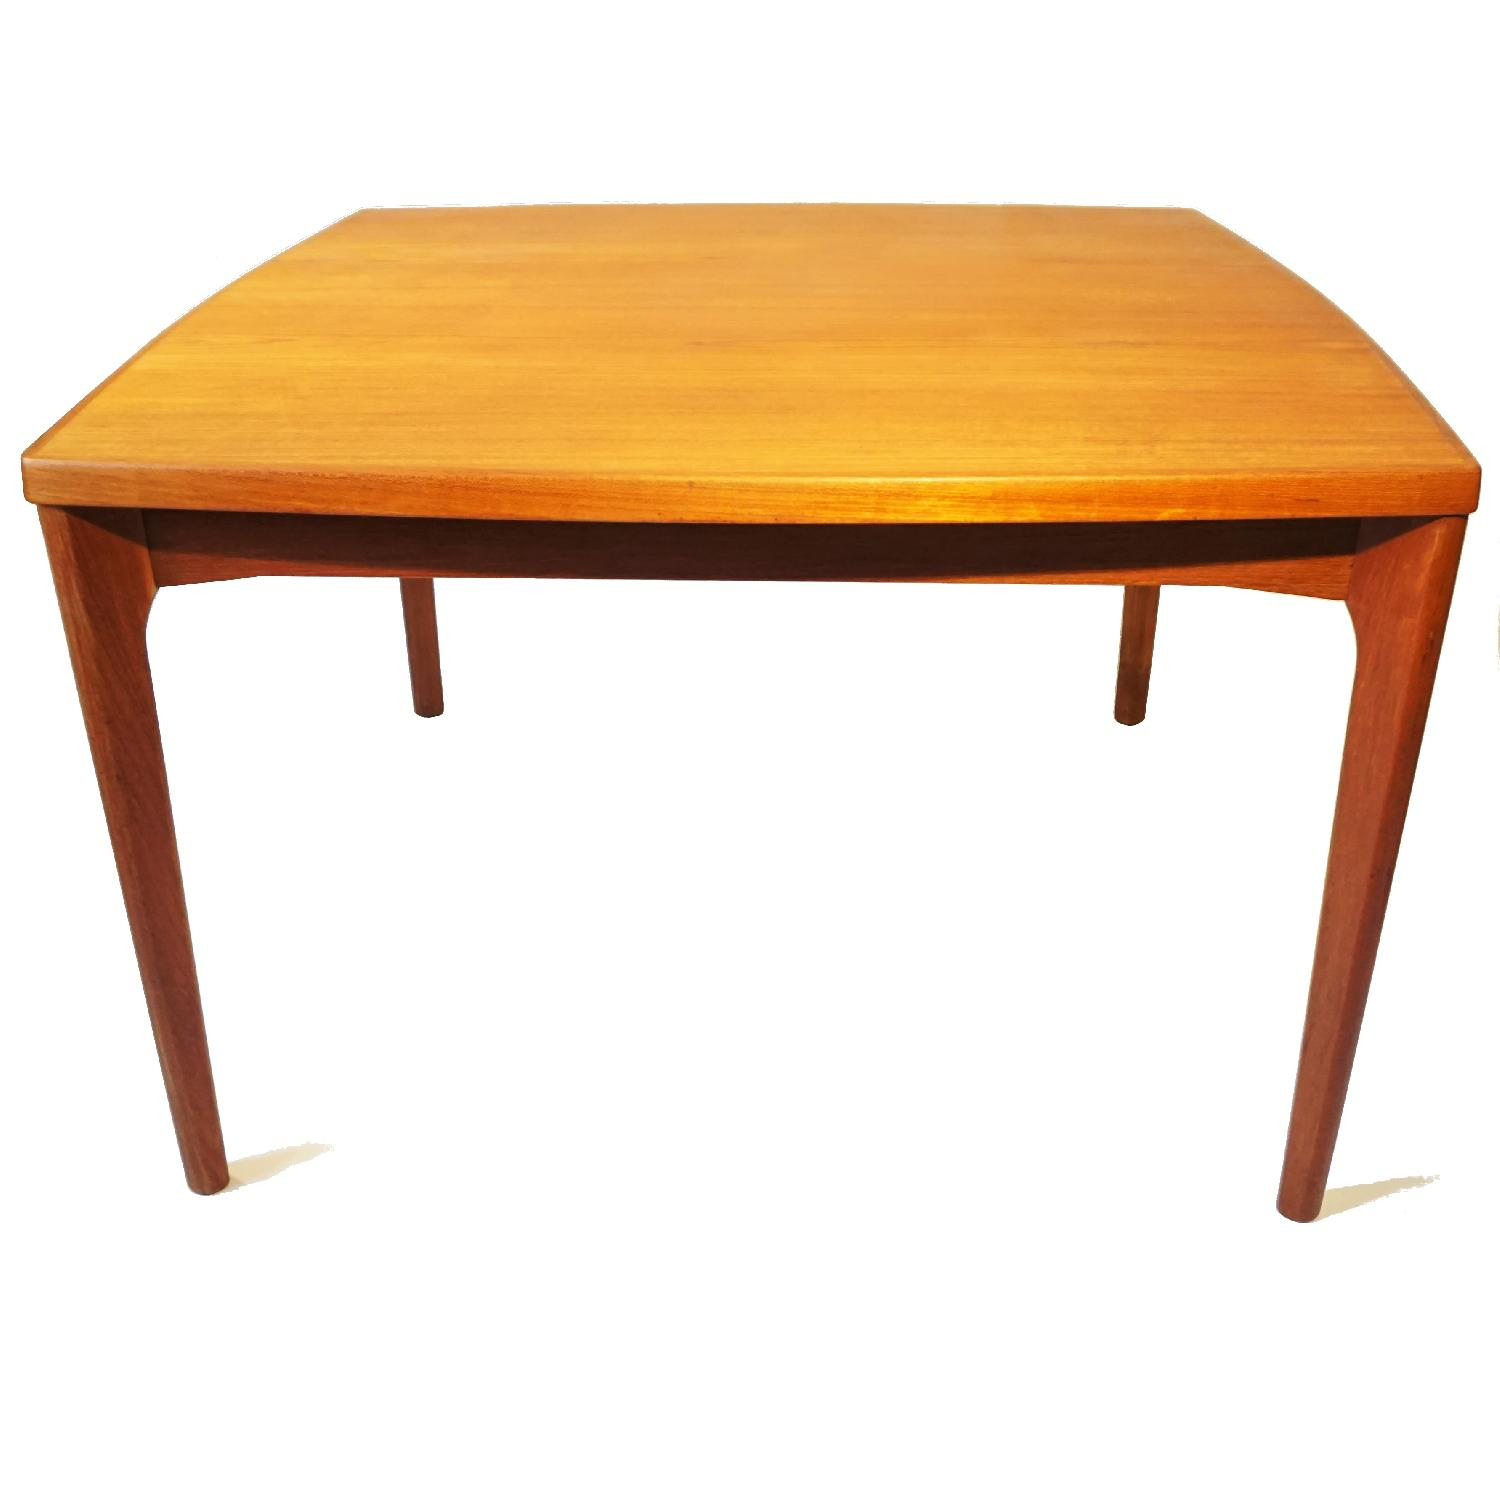 Henning Kjrnulf Extendable Dining Table - image-1